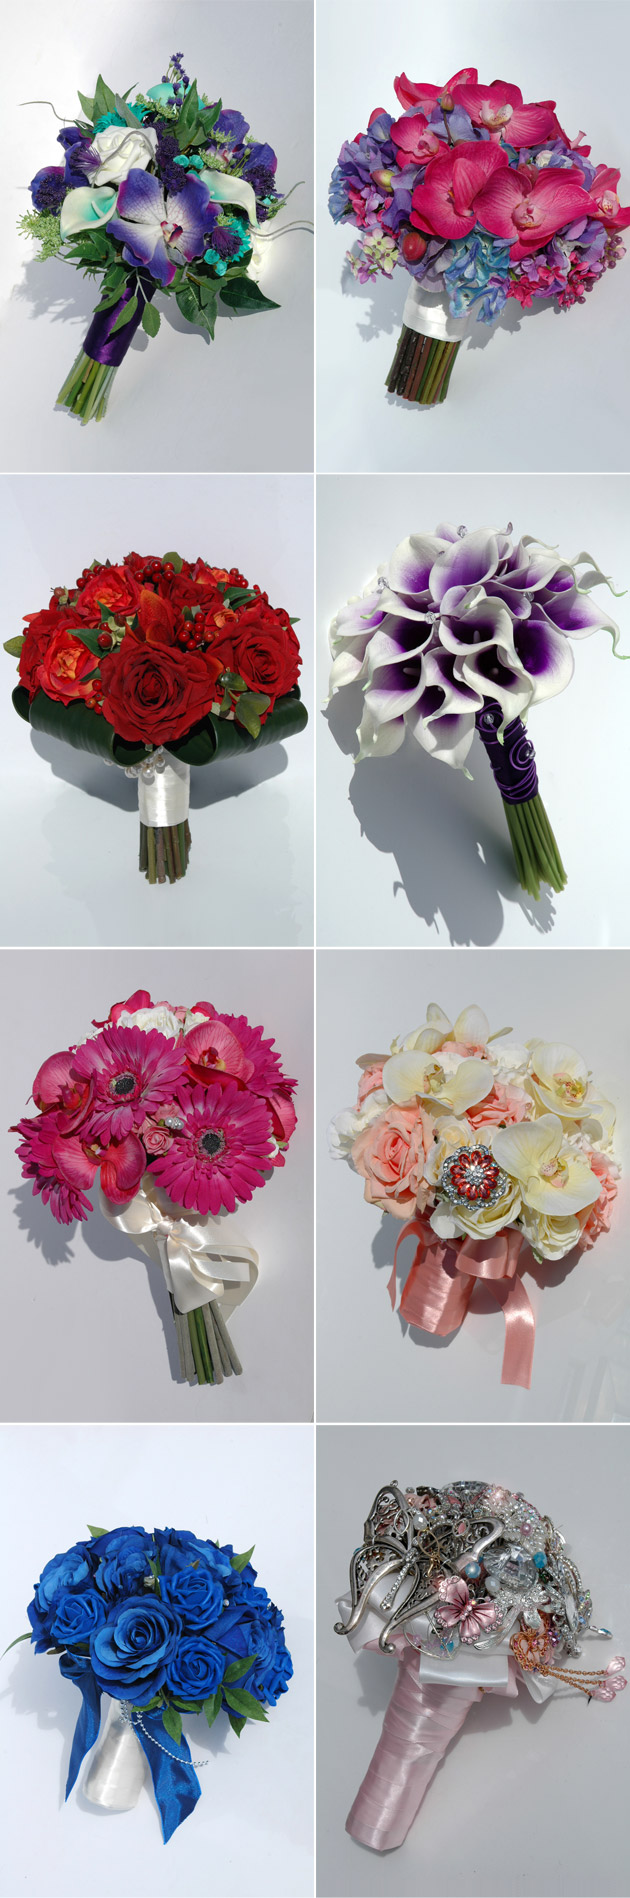 Silk Blooms Artificial Wedding Flower Bouquets